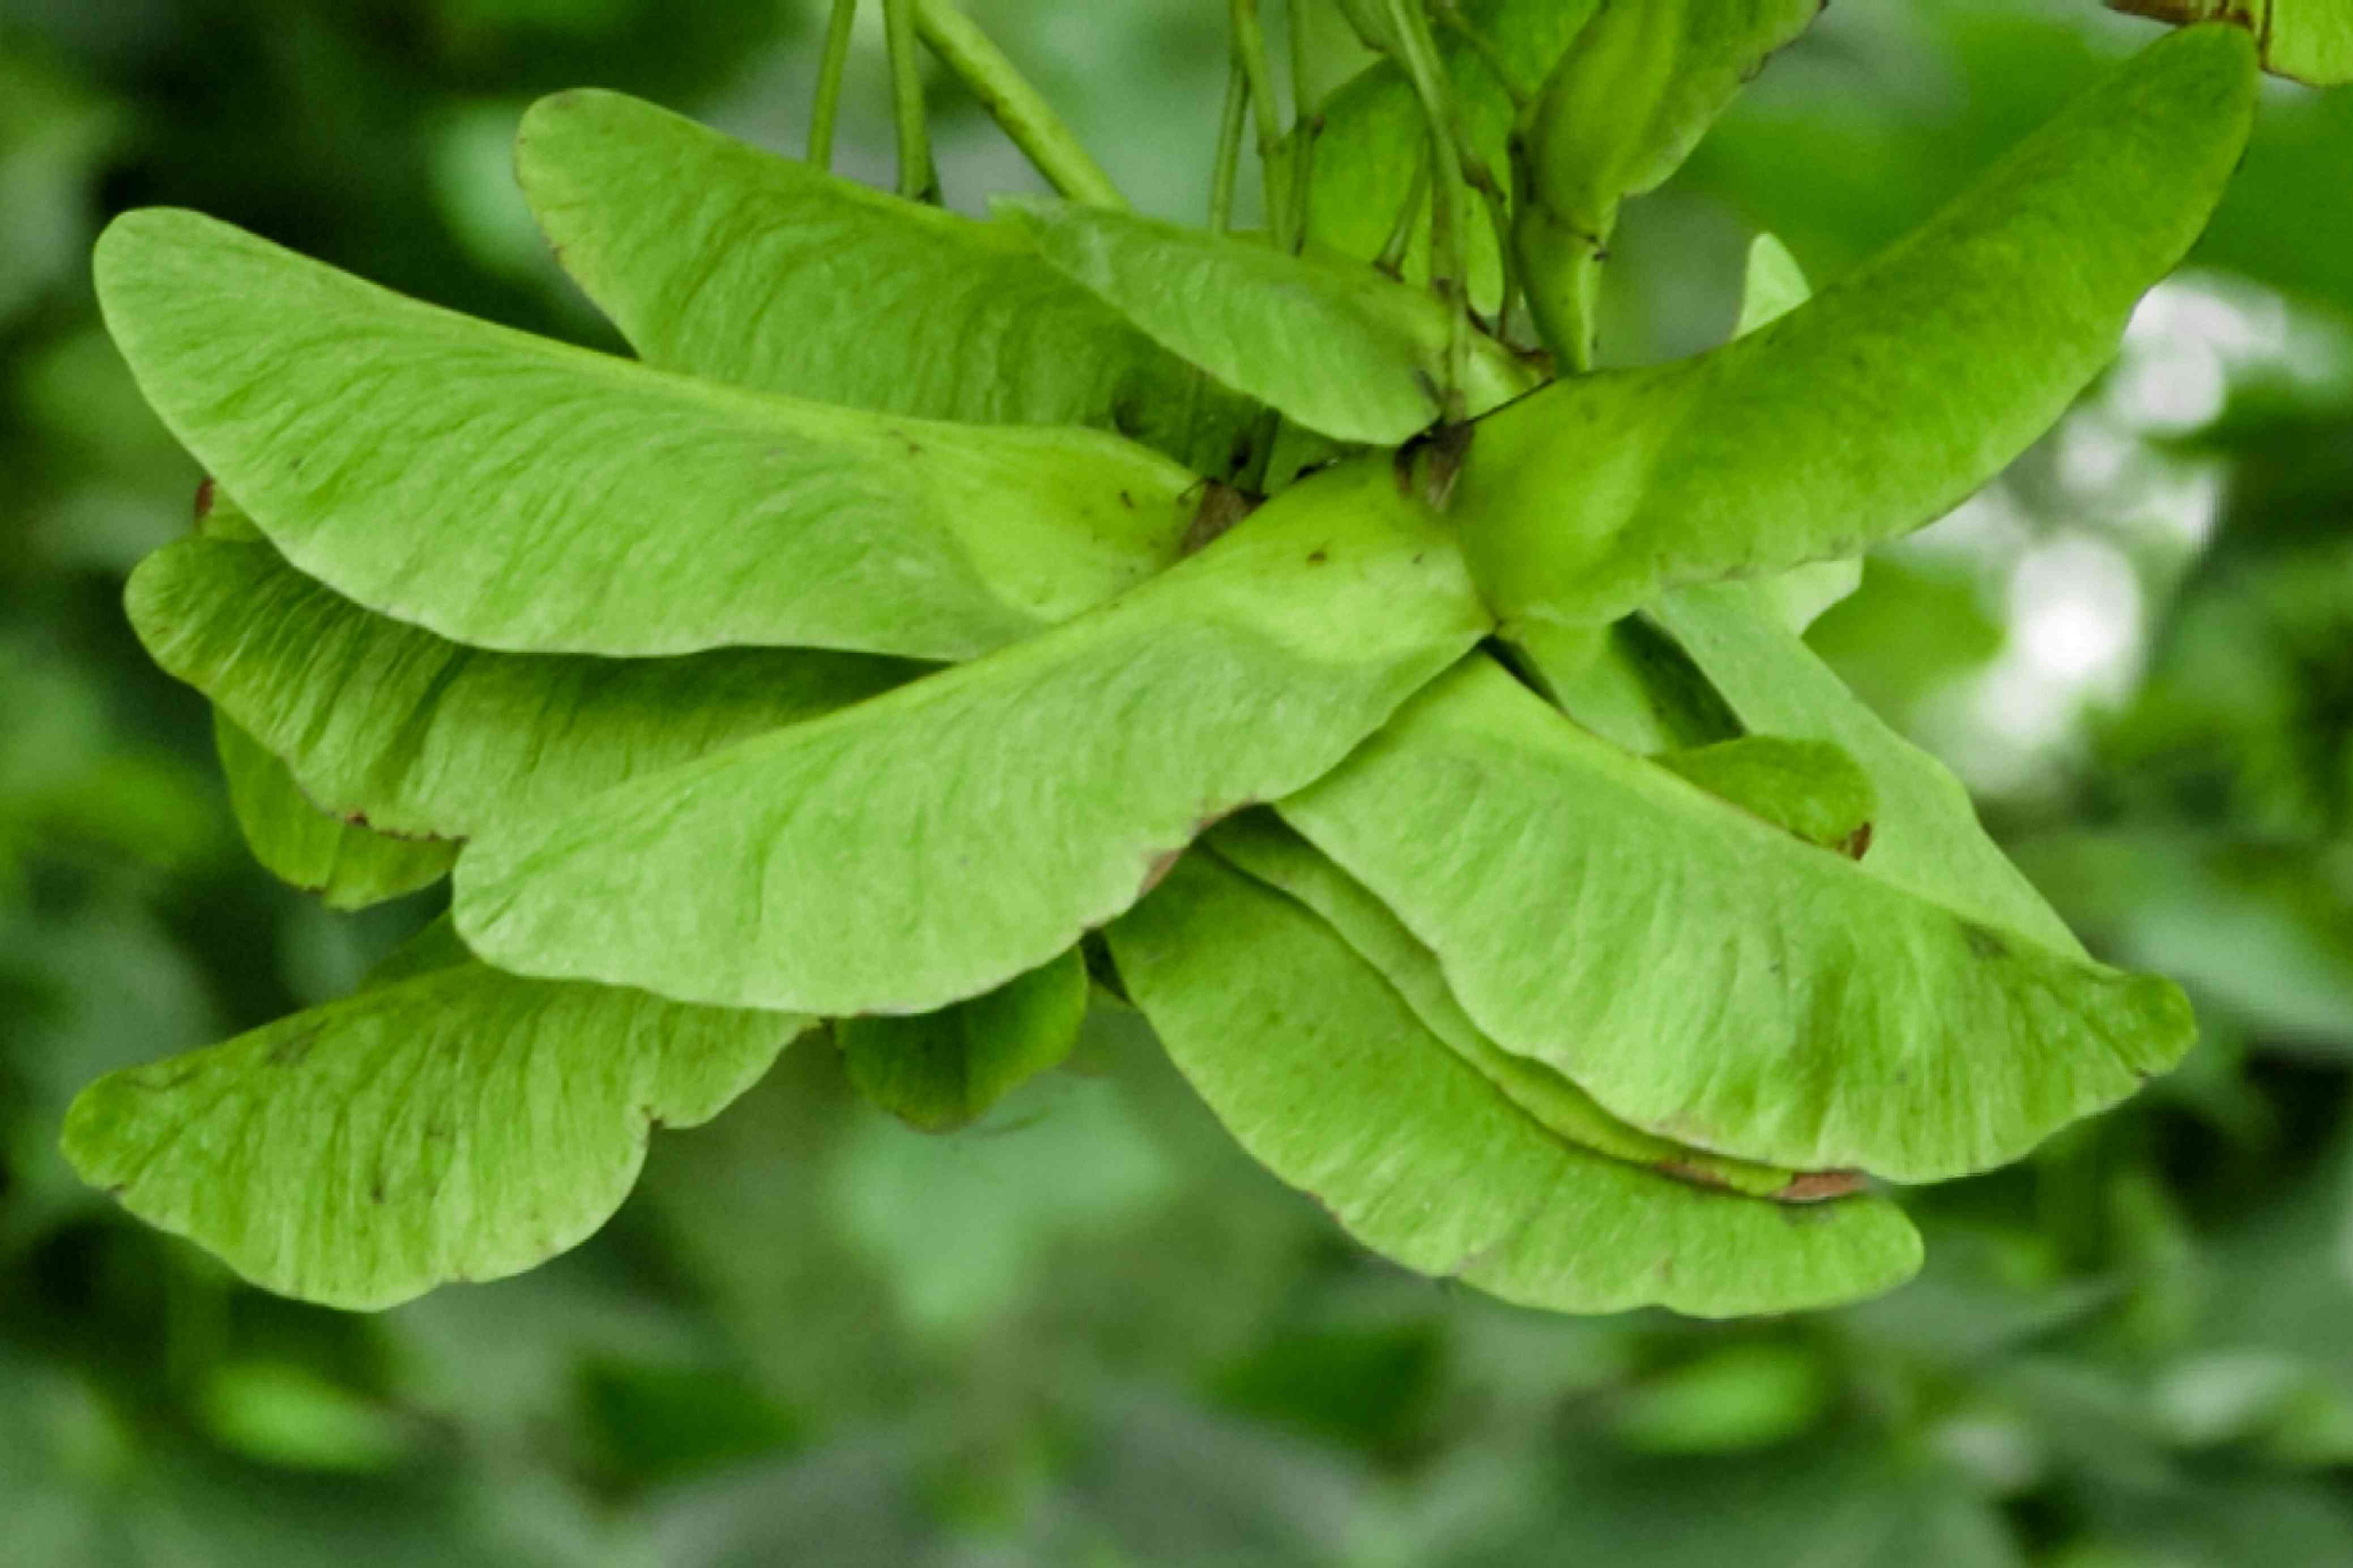 Boxelder tree leaves with irregular and toothed edges closeup